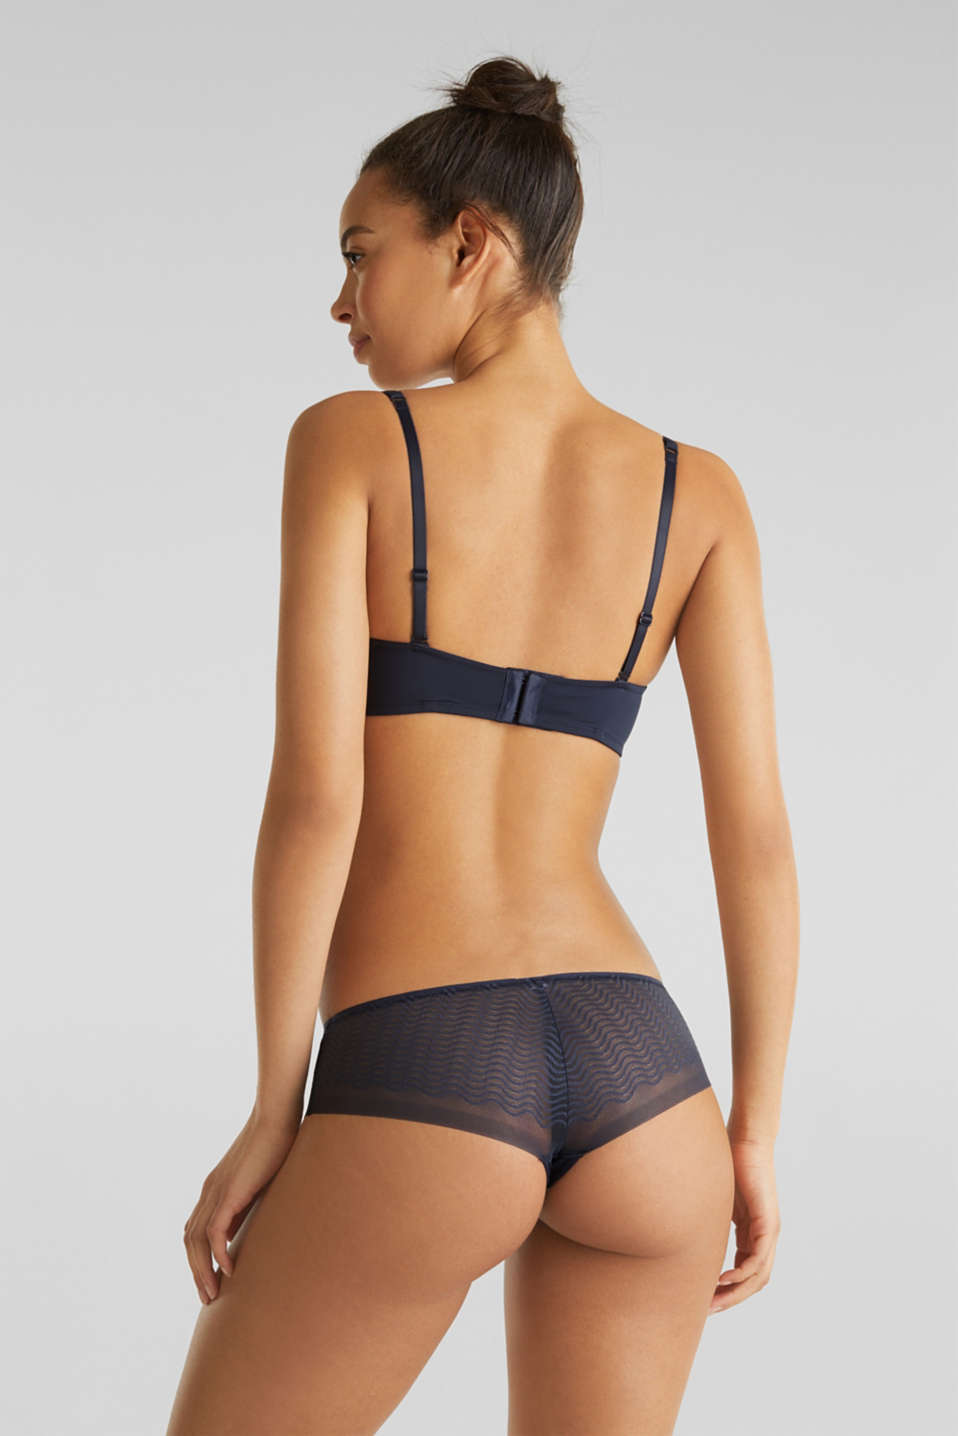 Padded underwire bra with detachable straps, NAVY 2, detail image number 1